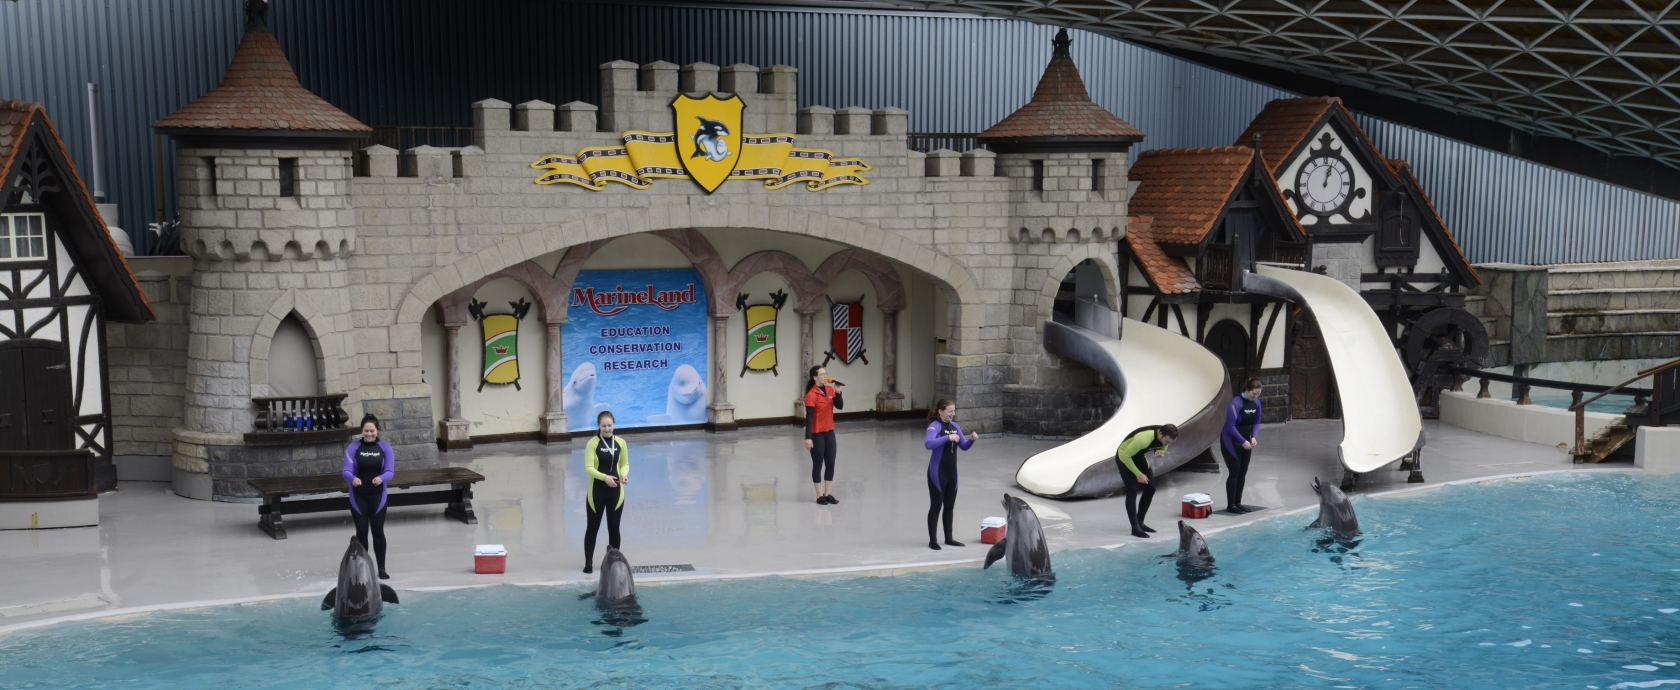 Attractions - Marineland